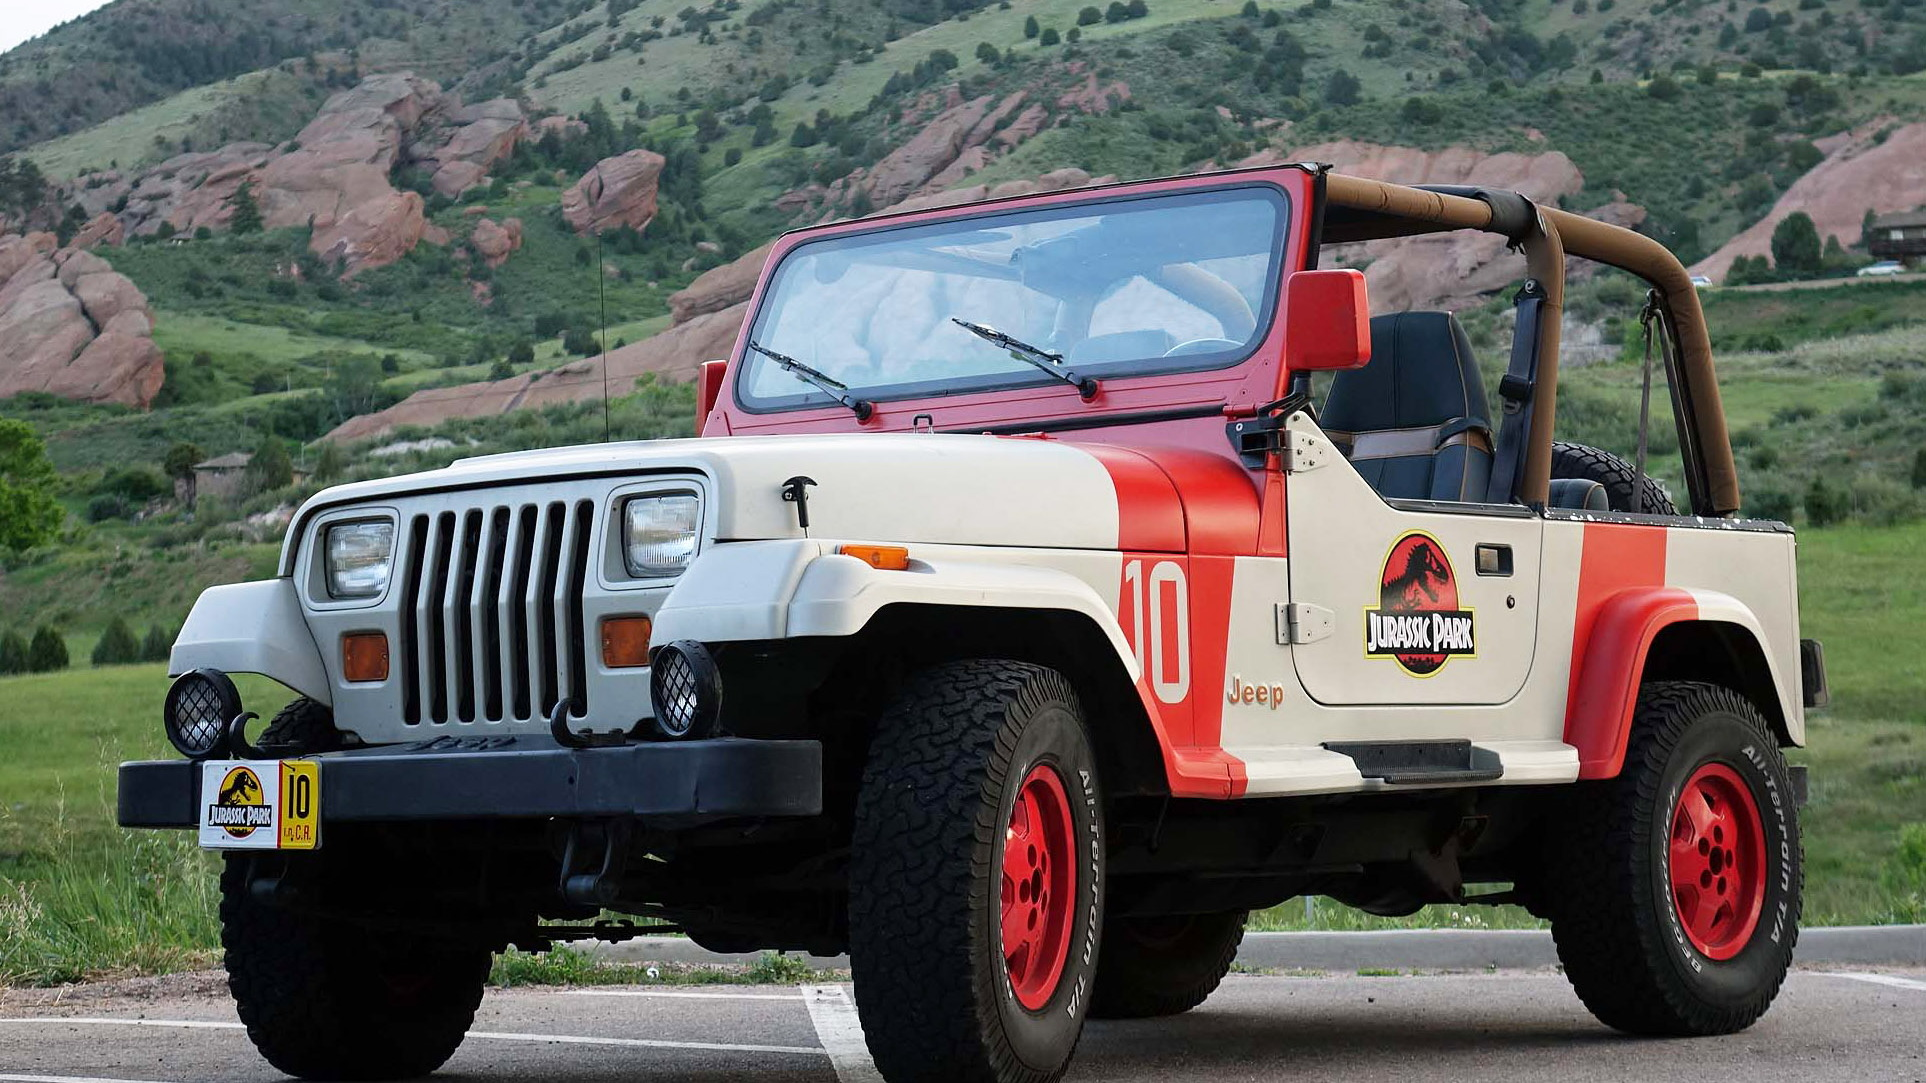 """Jurassic Park"" Jeep Wranglers at Dinosaur Ridge, Morrison, Colorado"